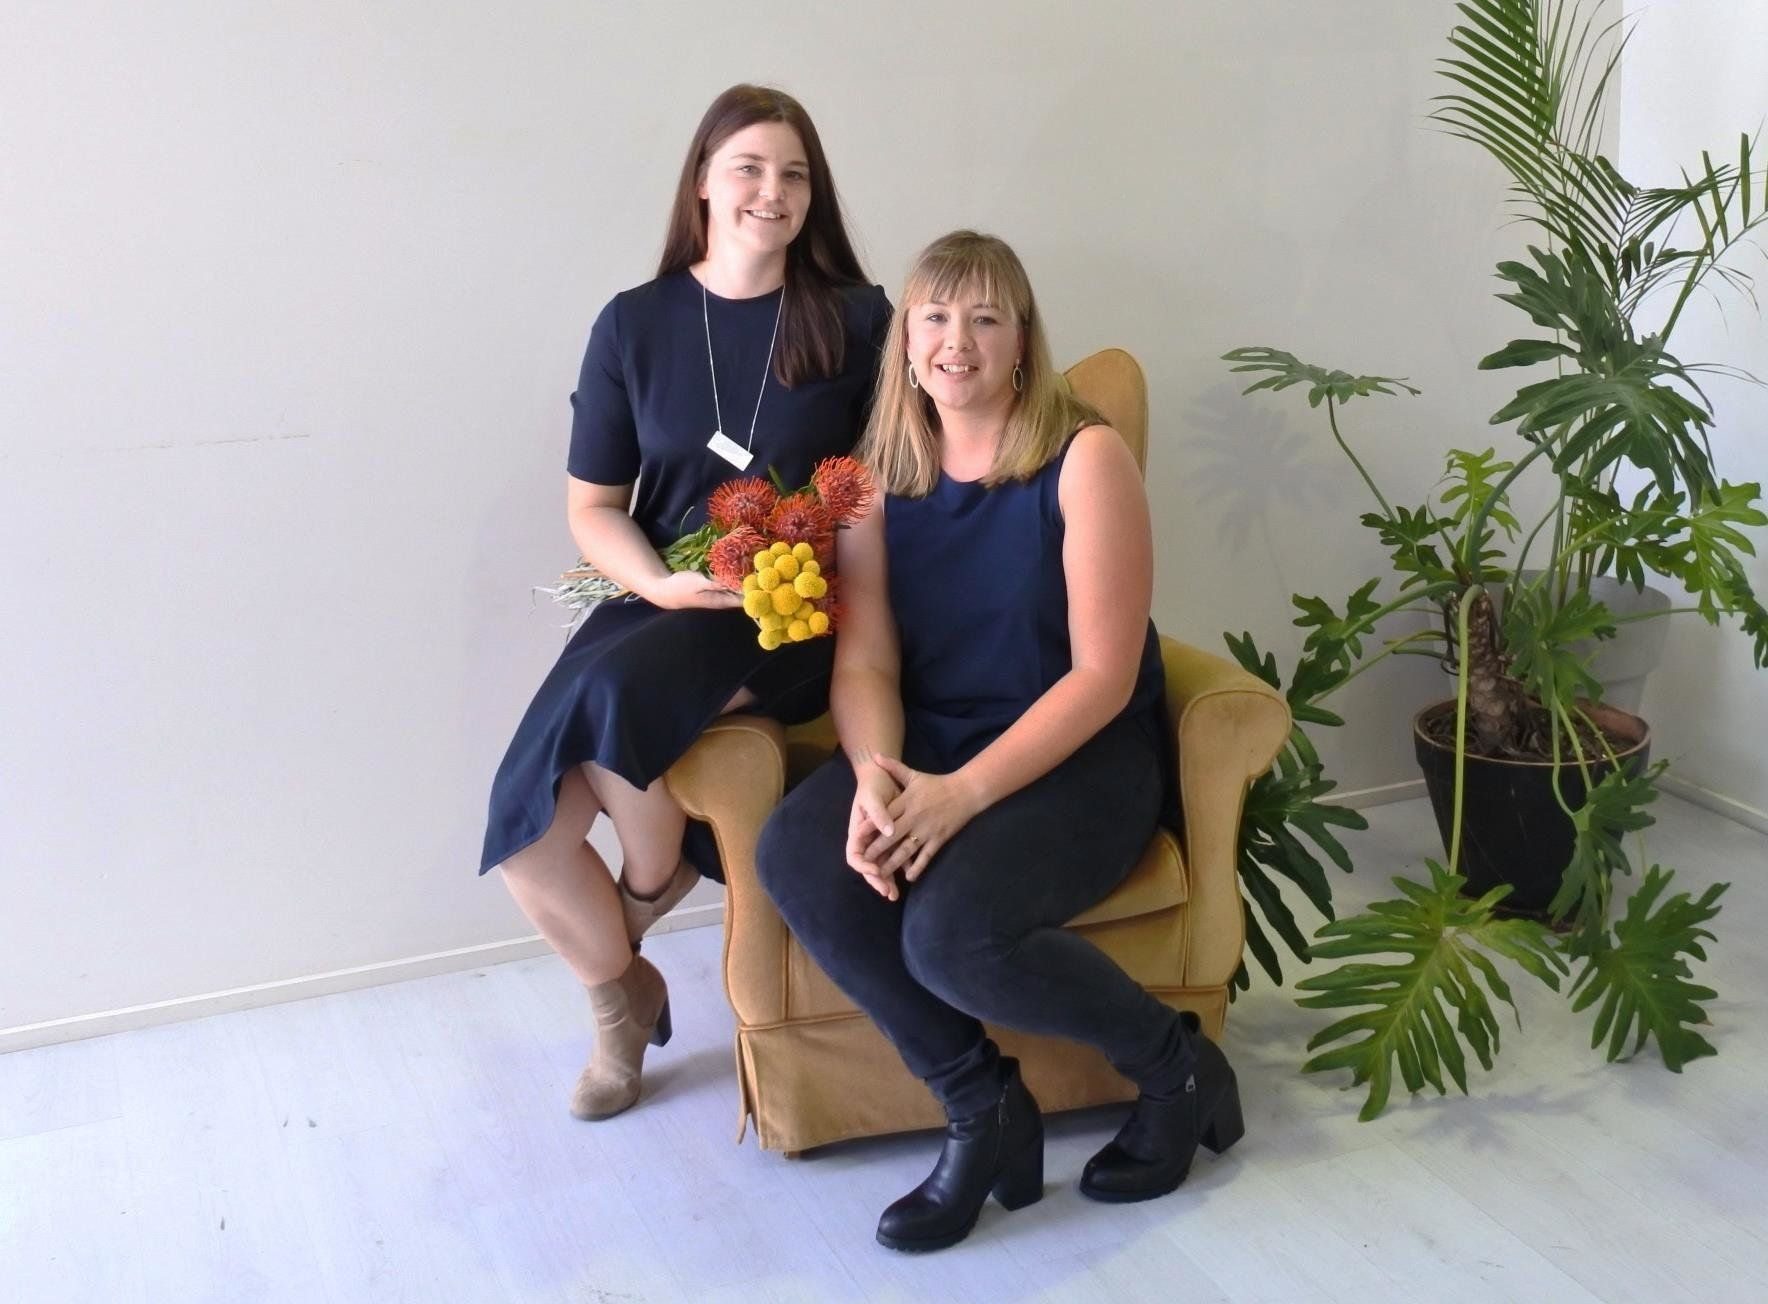 Tara Baker (L)andArlia Hassel, whoco-founded 'Dancing With Her'.